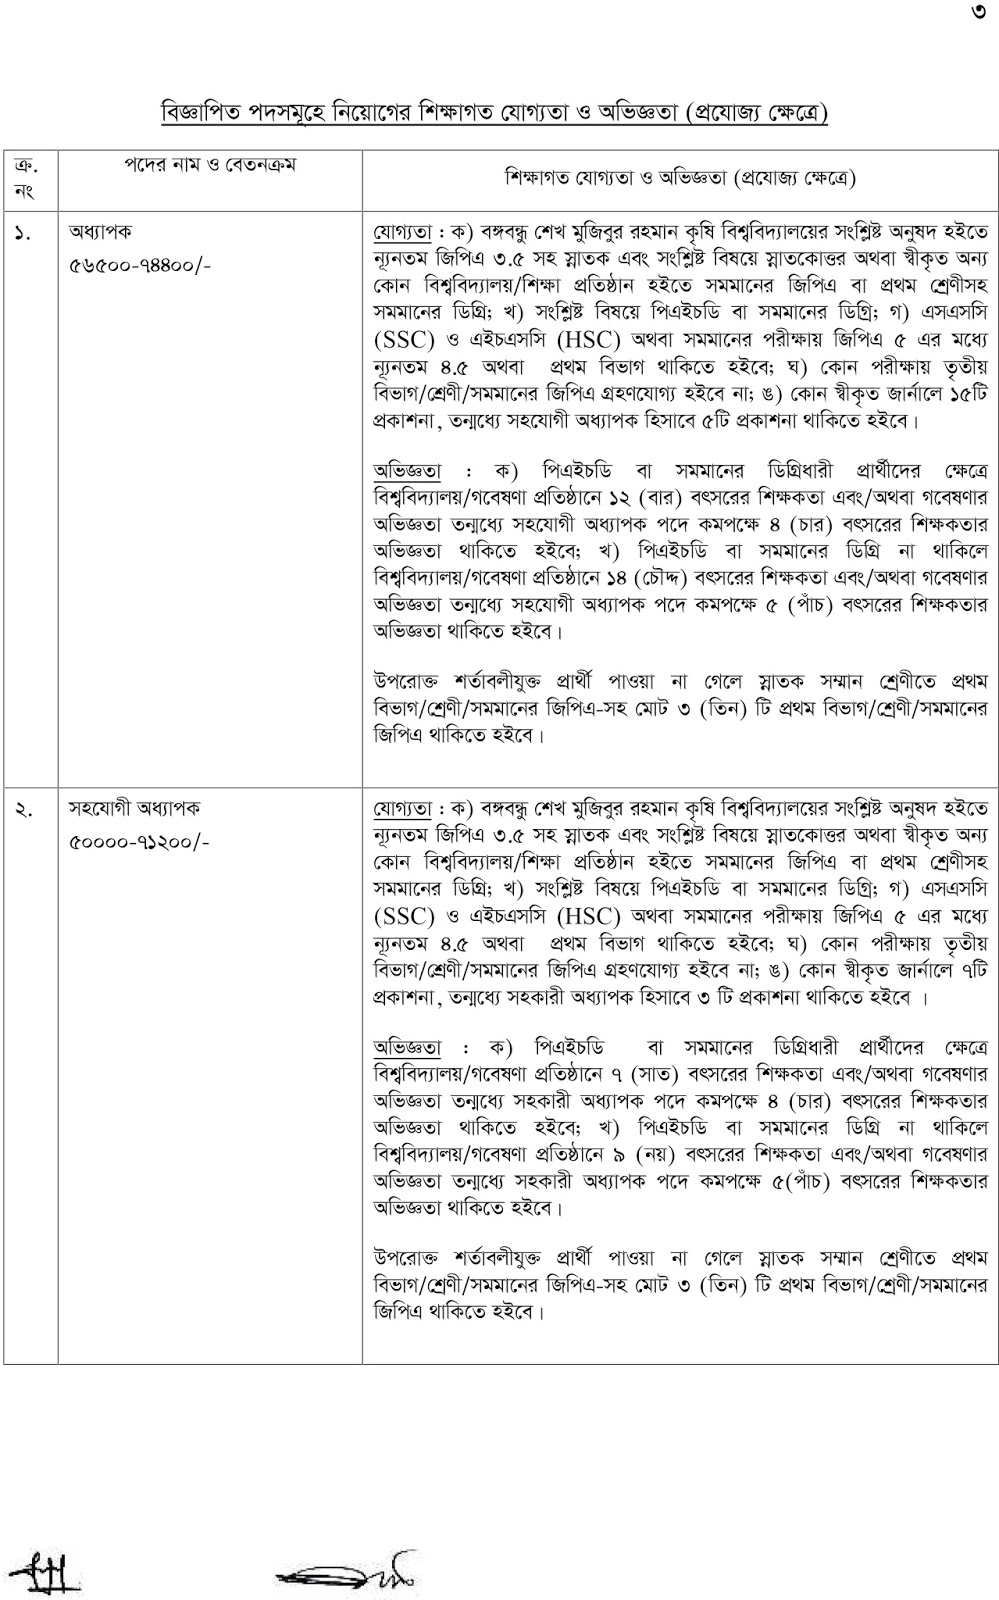 BSMRAU Professor and lecturer Recruitment Circular 2018